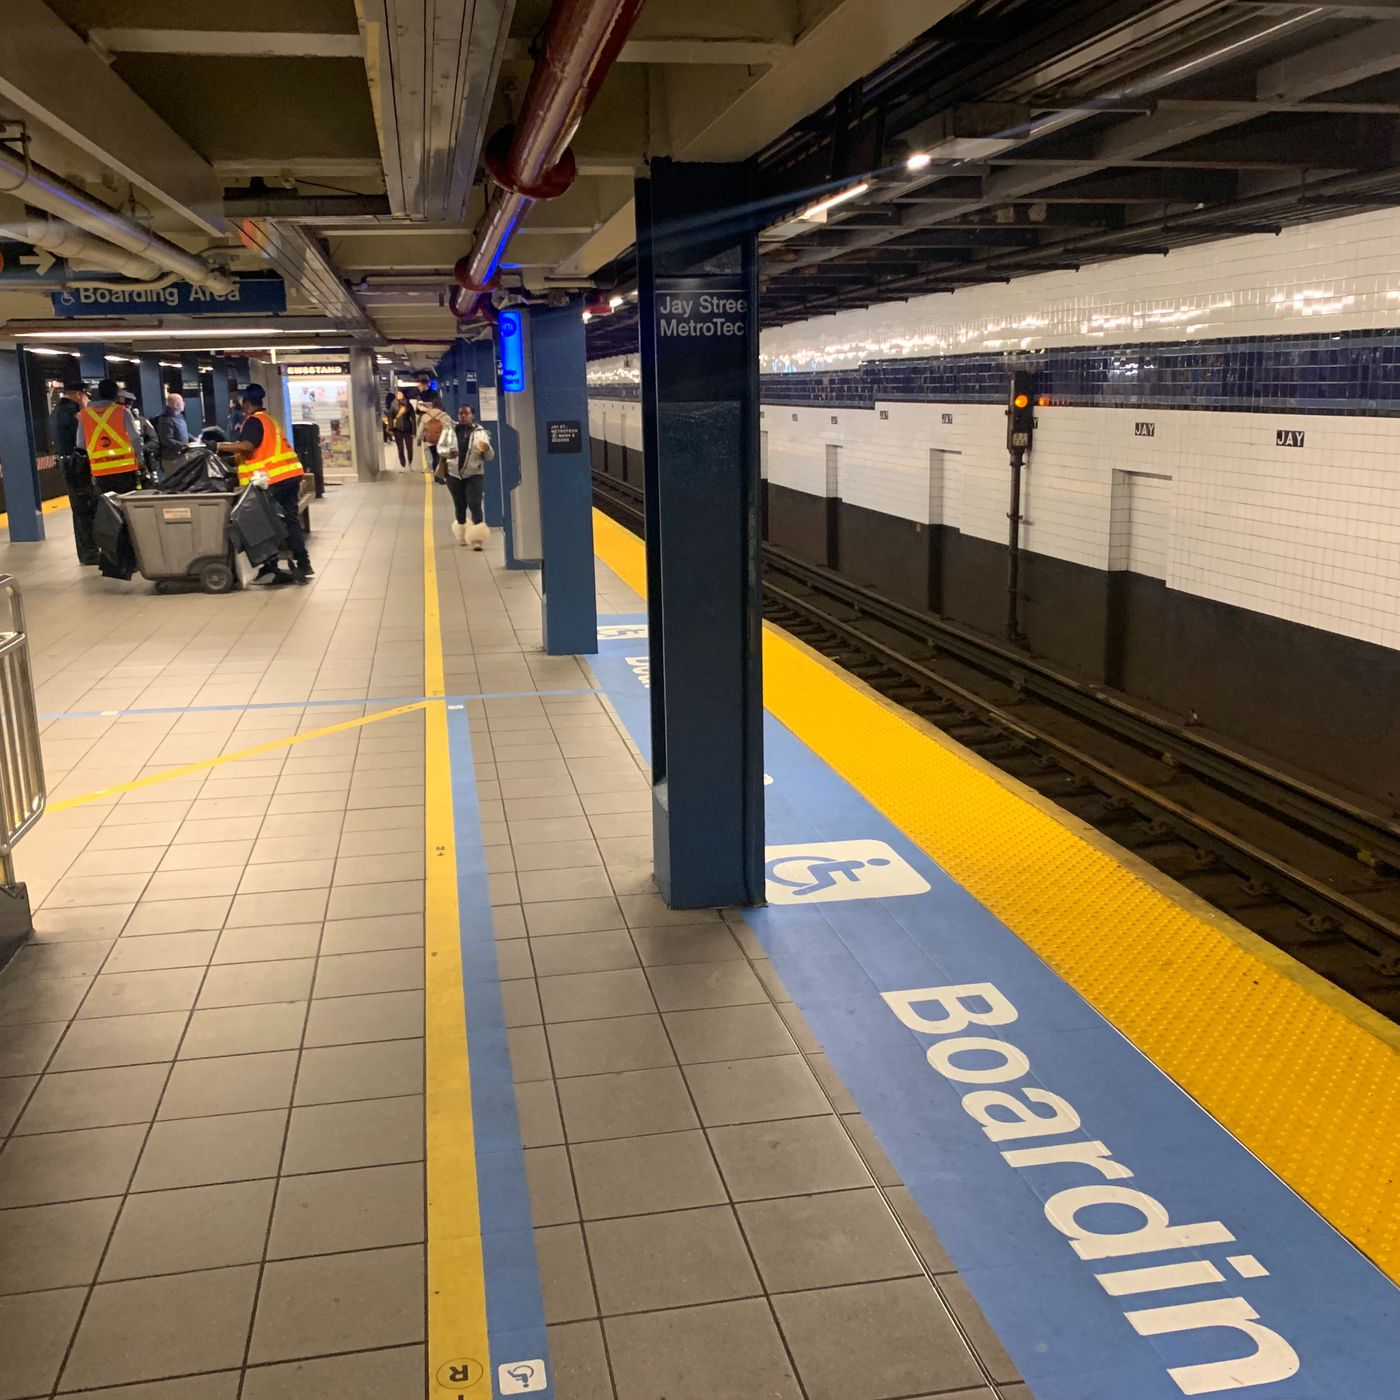 Mta Turns Jay Street Metrotech Station Into An Accessibility Lab